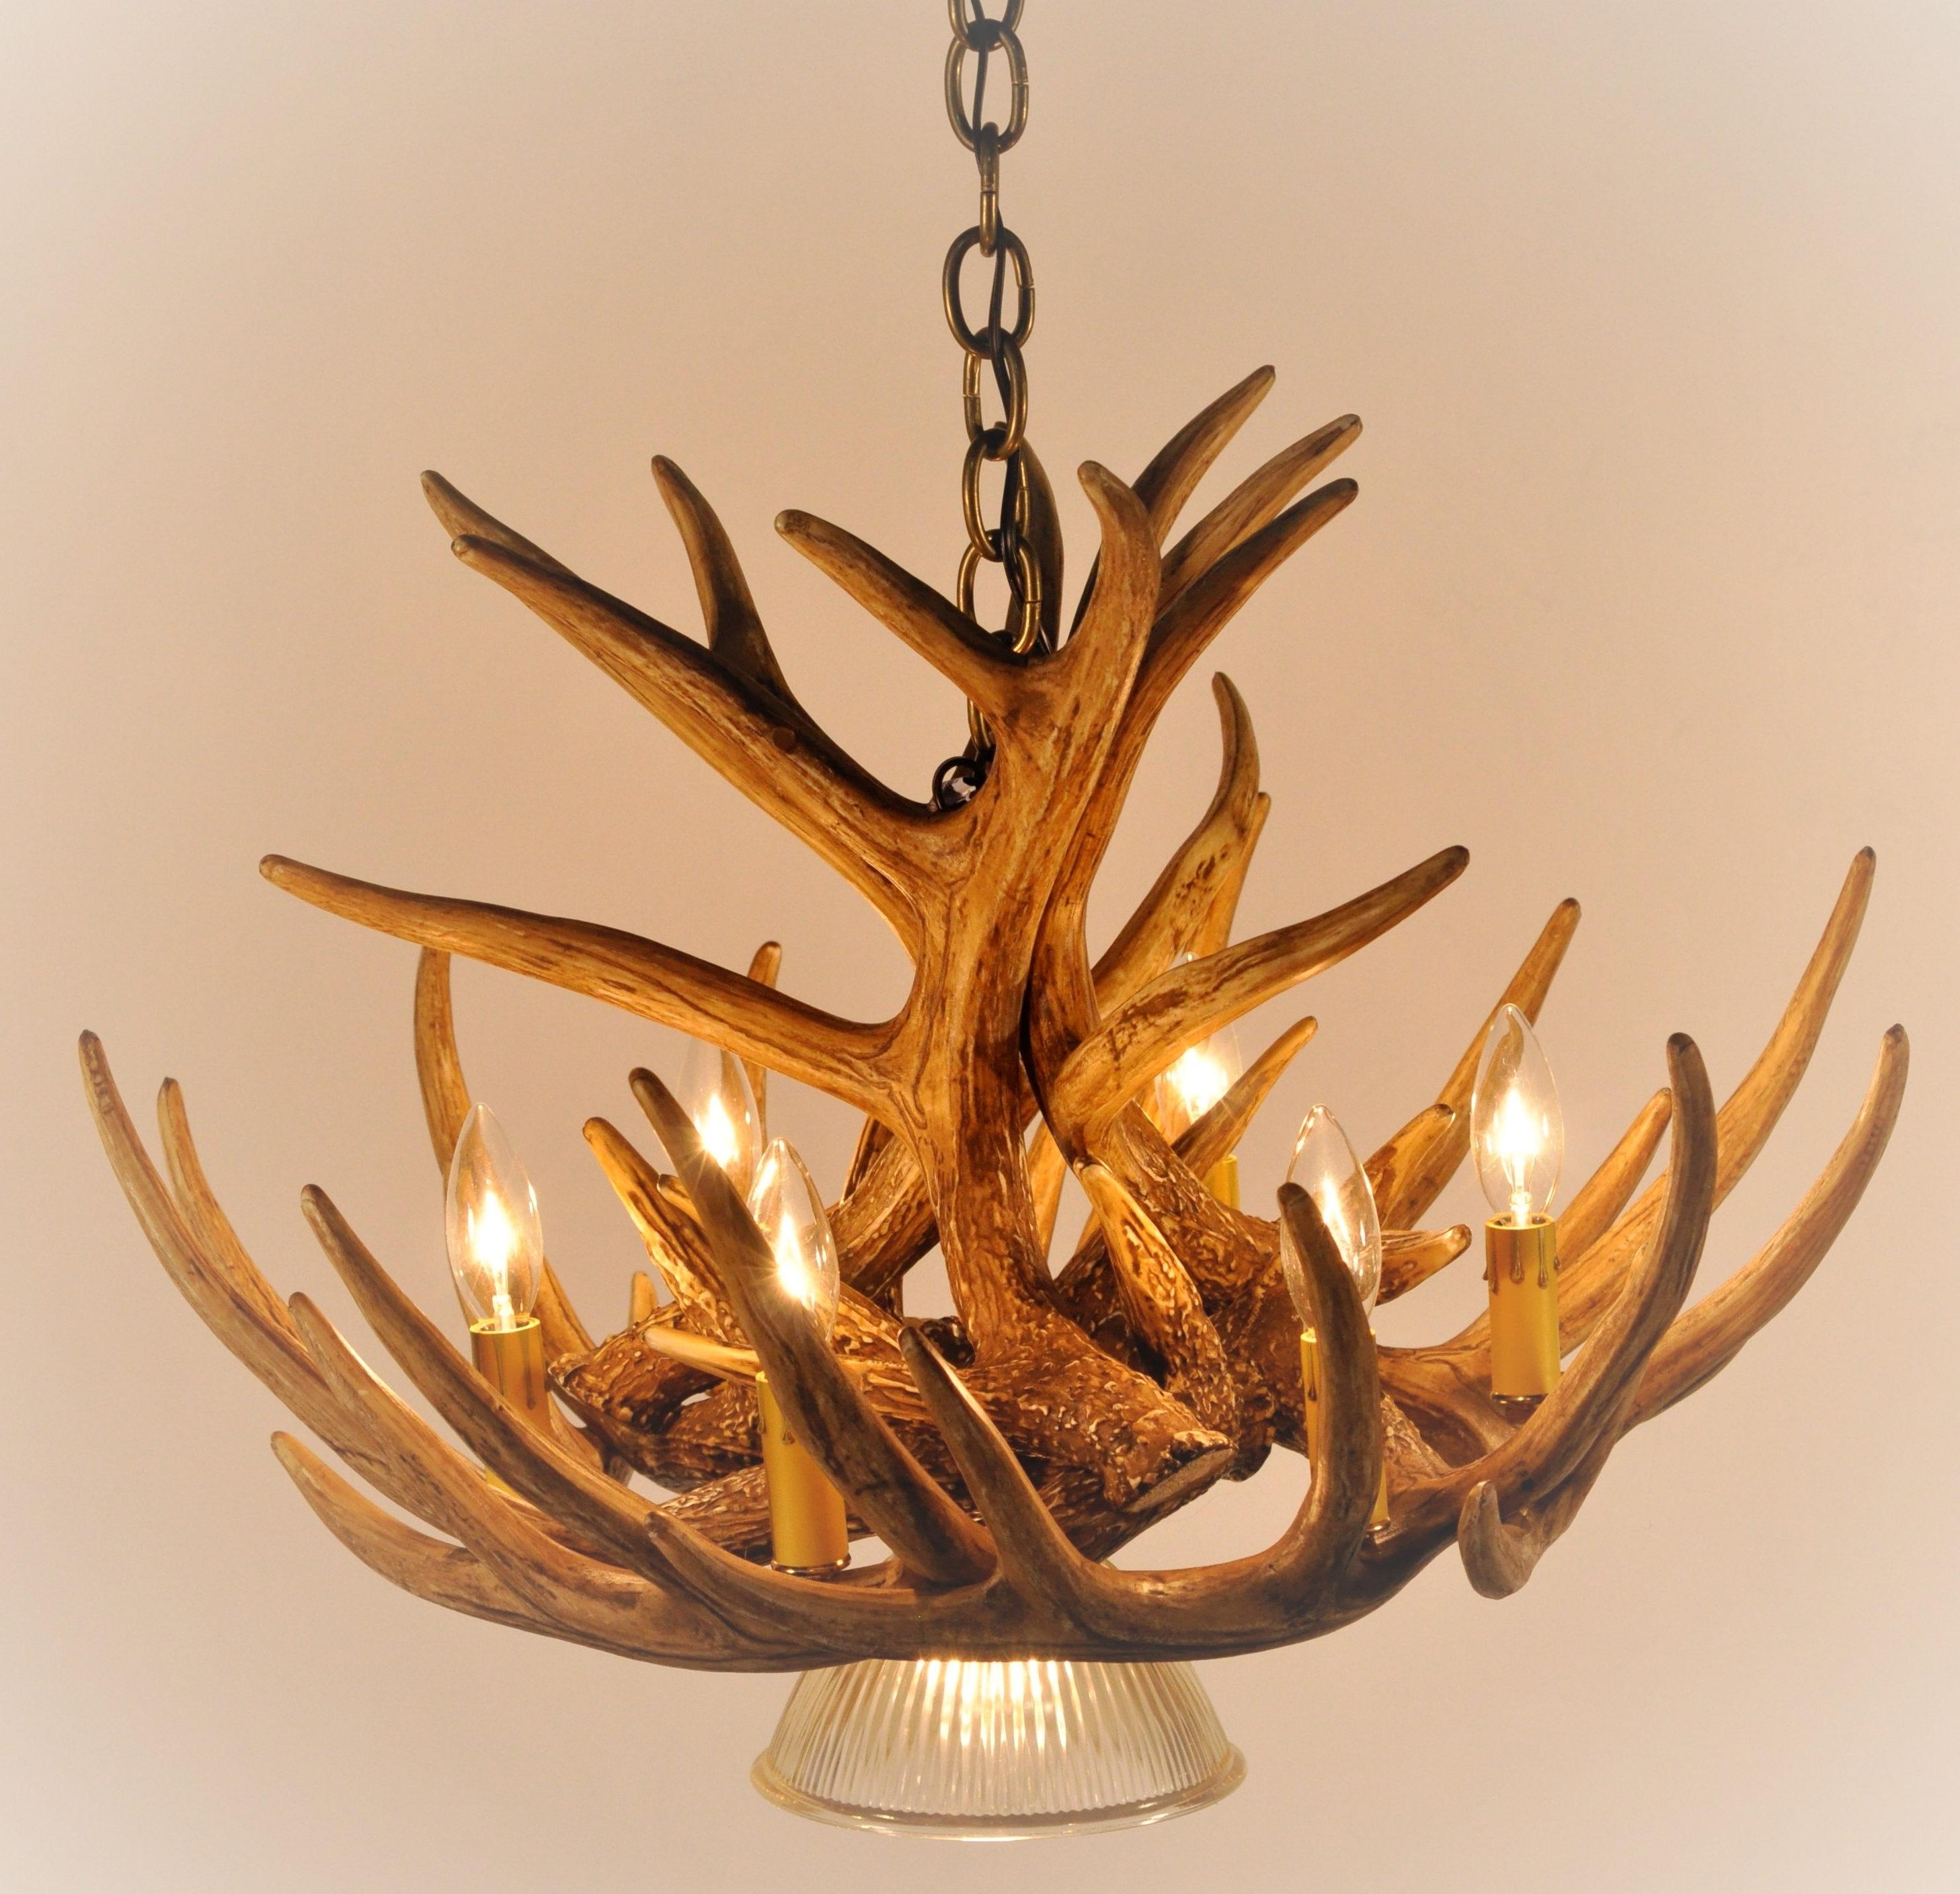 2017 Whitetail Deer 9 Antler Cascade Chandelier With 1 Downlight* – Cast Throughout Antler Chandeliers (View 1 of 15)